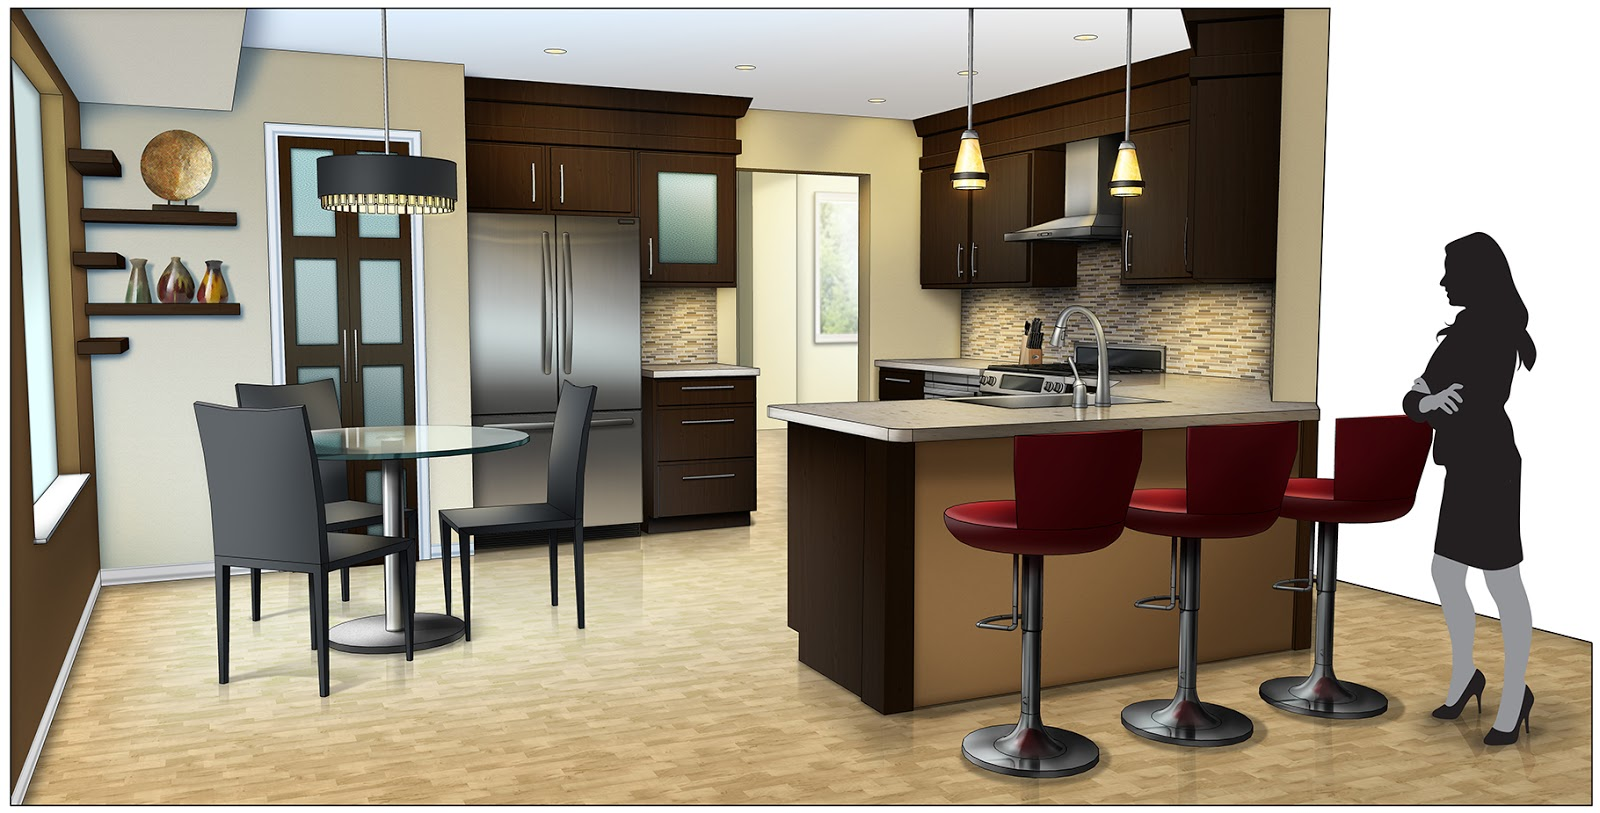 Designing to Learn Blog  How To Render a Realistic Interior in Photoshop How To Render a Realistic Interior in Photoshop